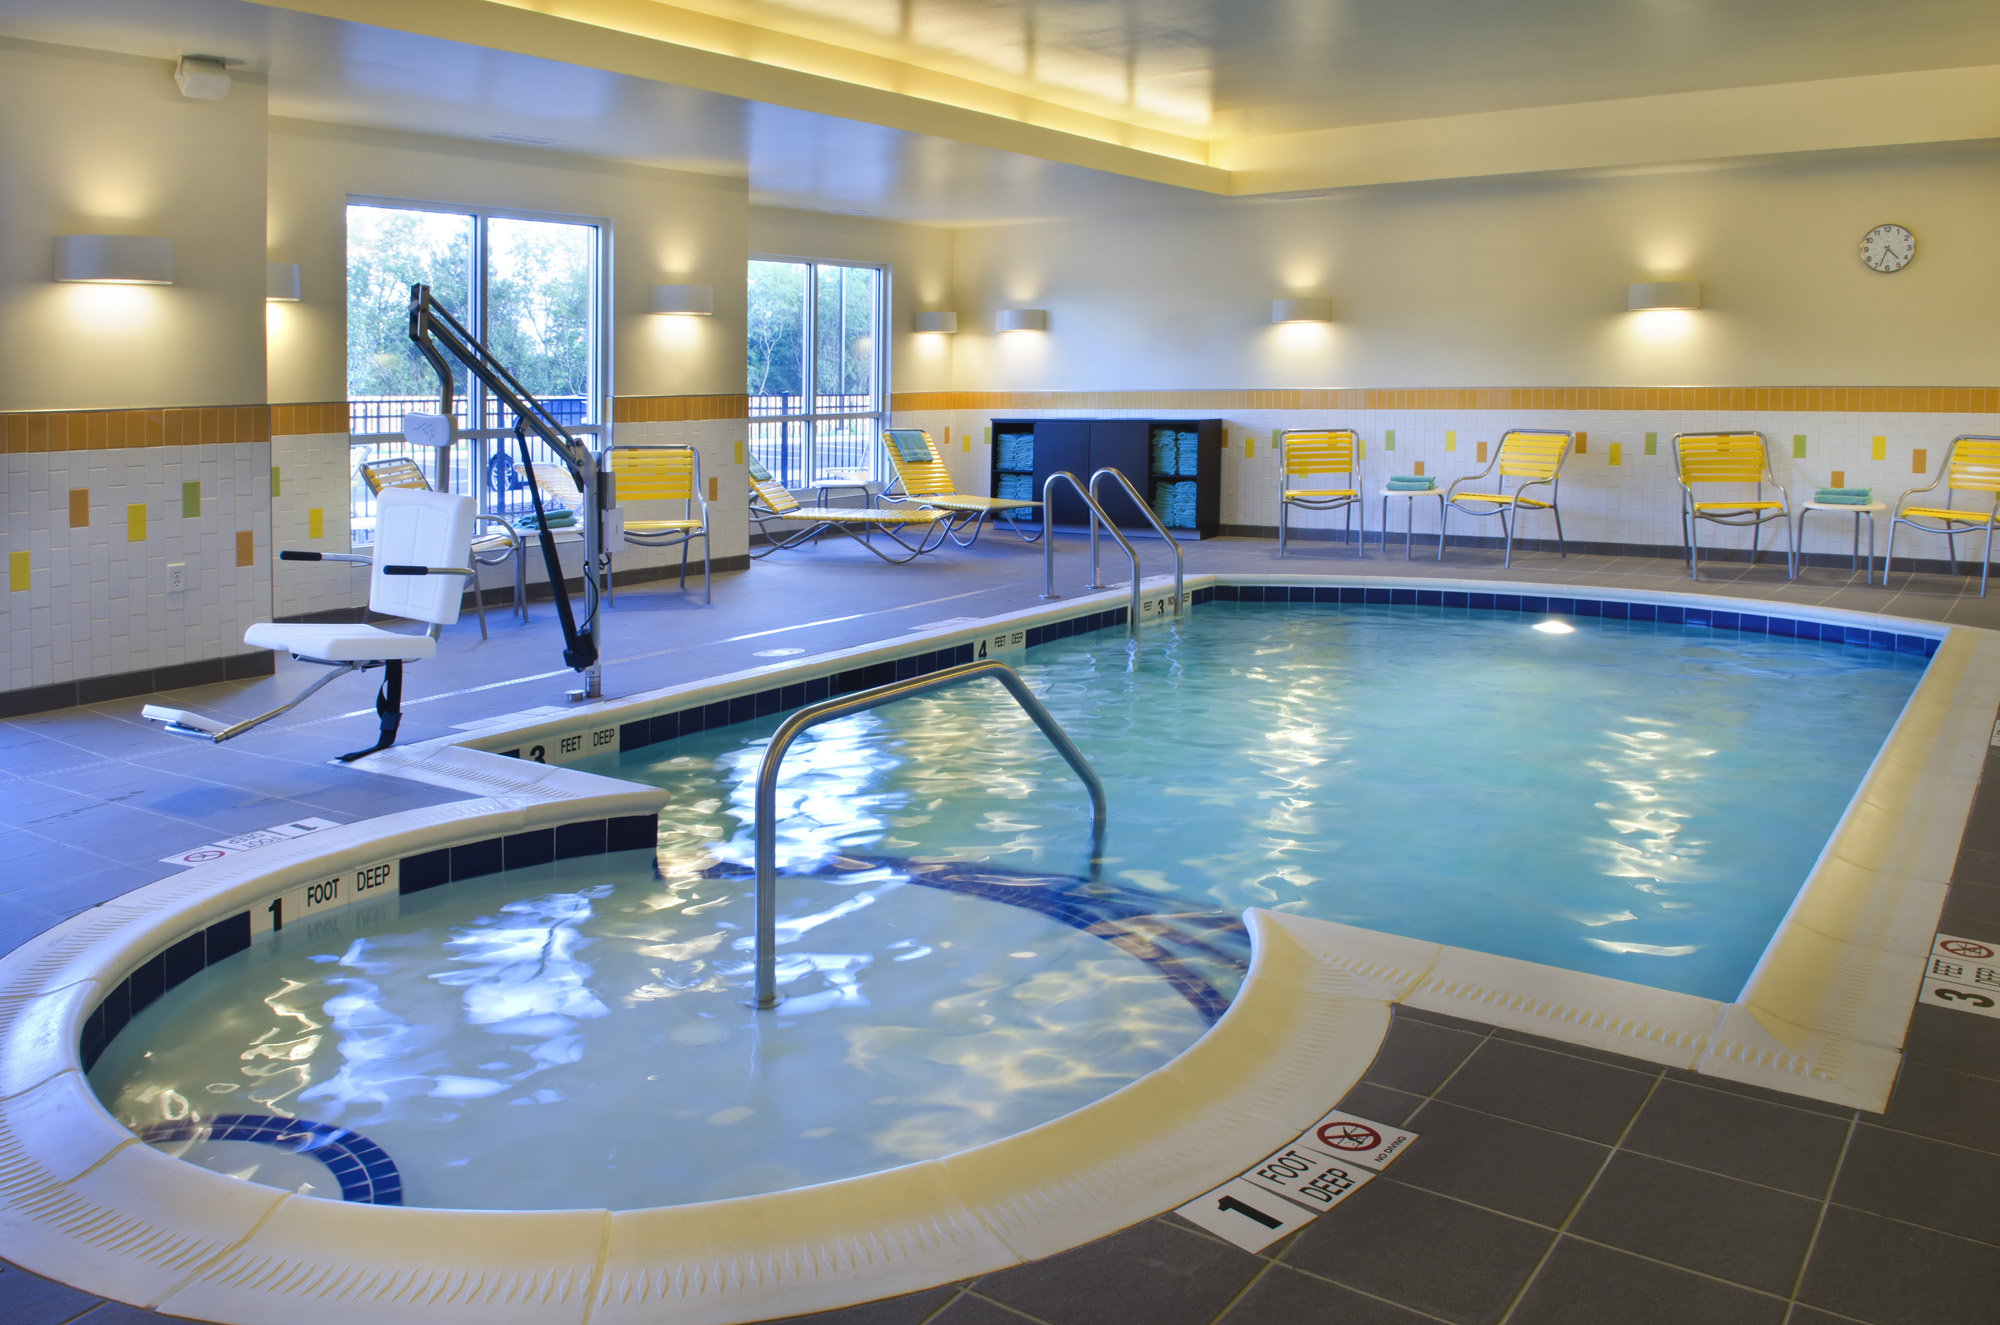 Family Fun Indoor Pools at Hotels